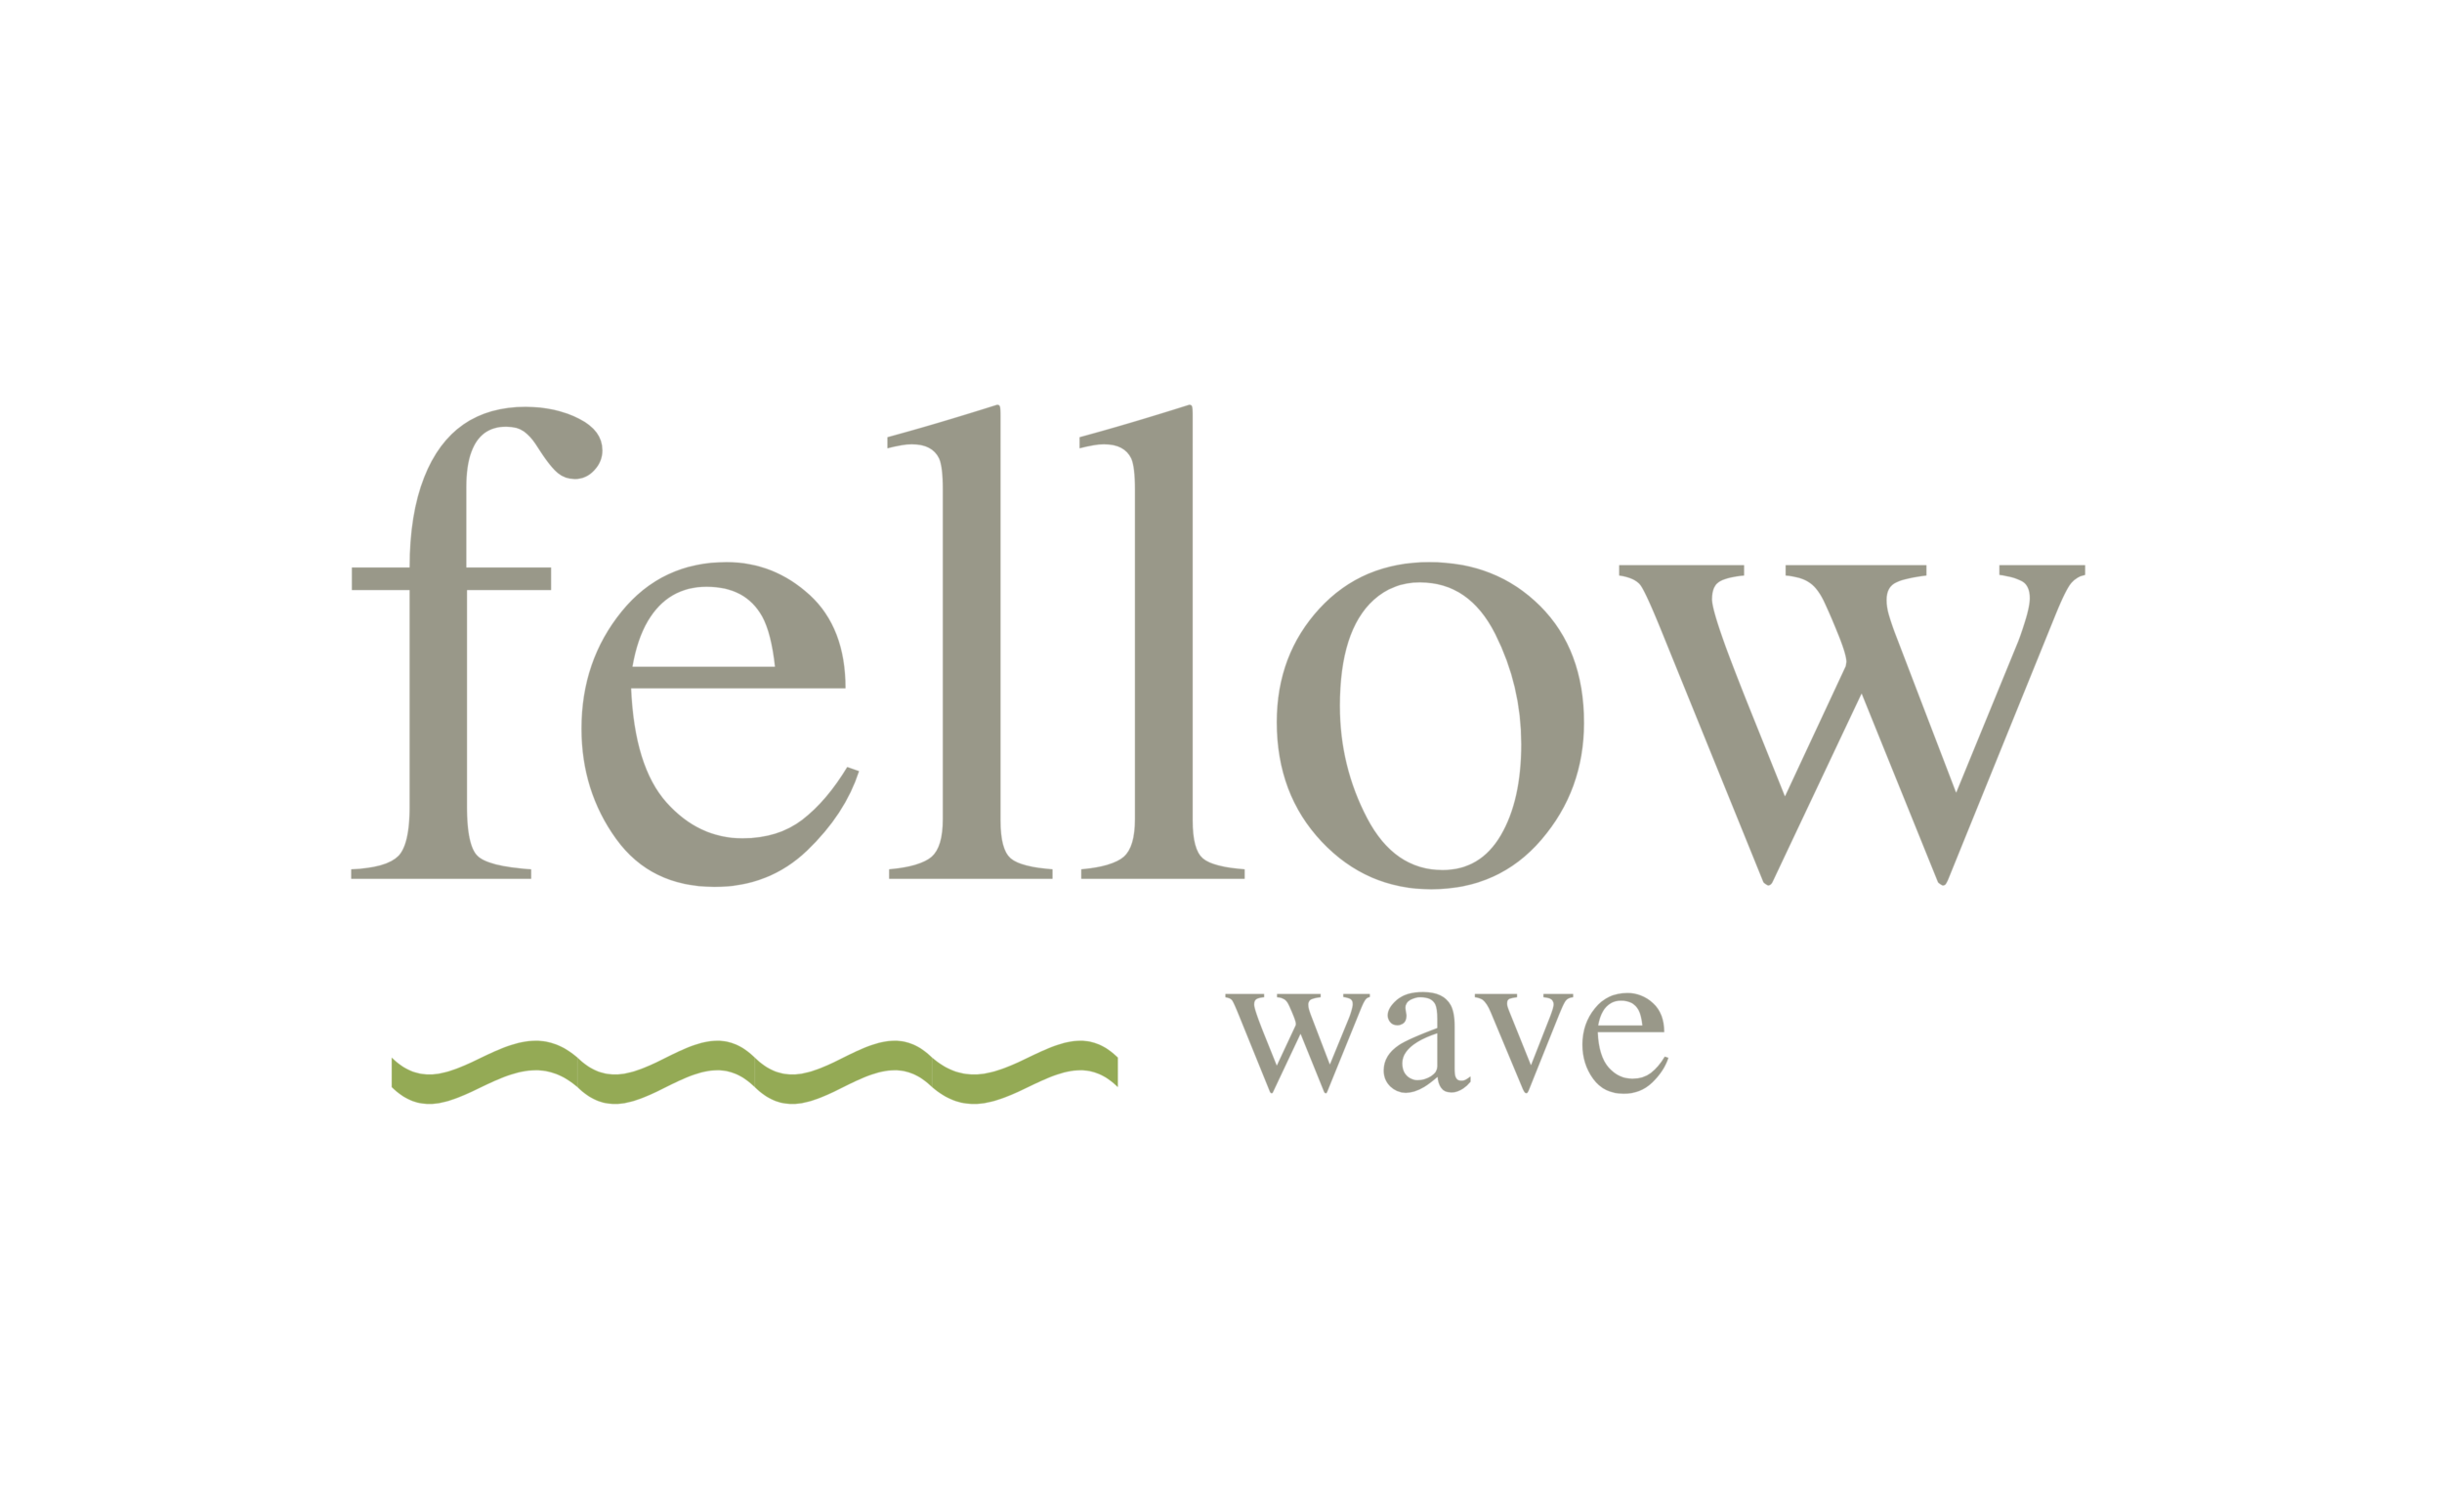 FELLOW WAVE